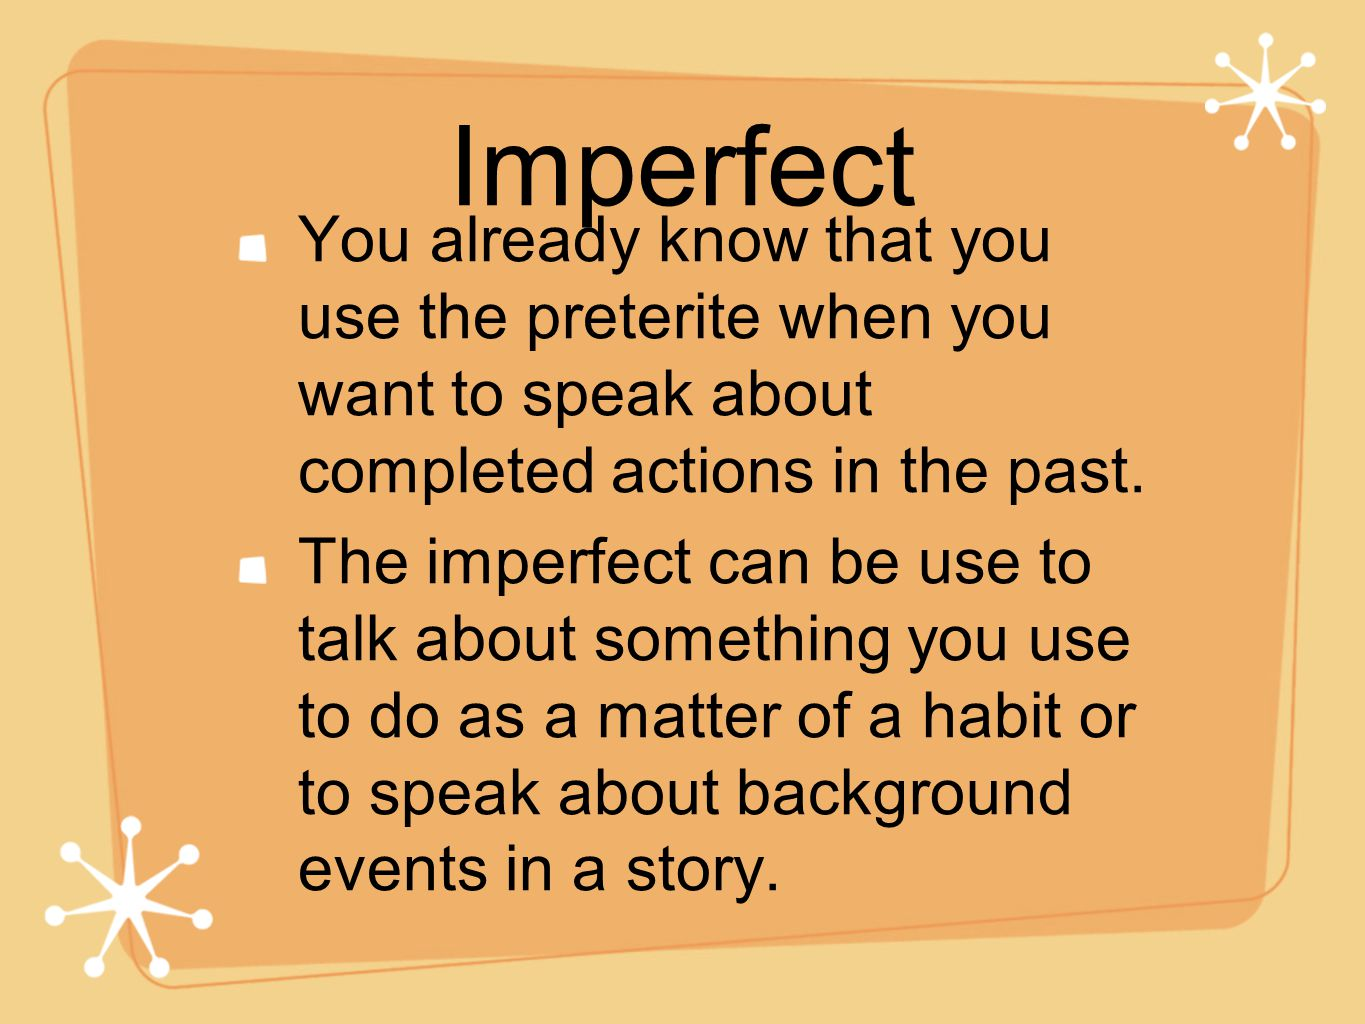 Imperfect You already know that you use the preterite when you want to speak about completed actions in the past.